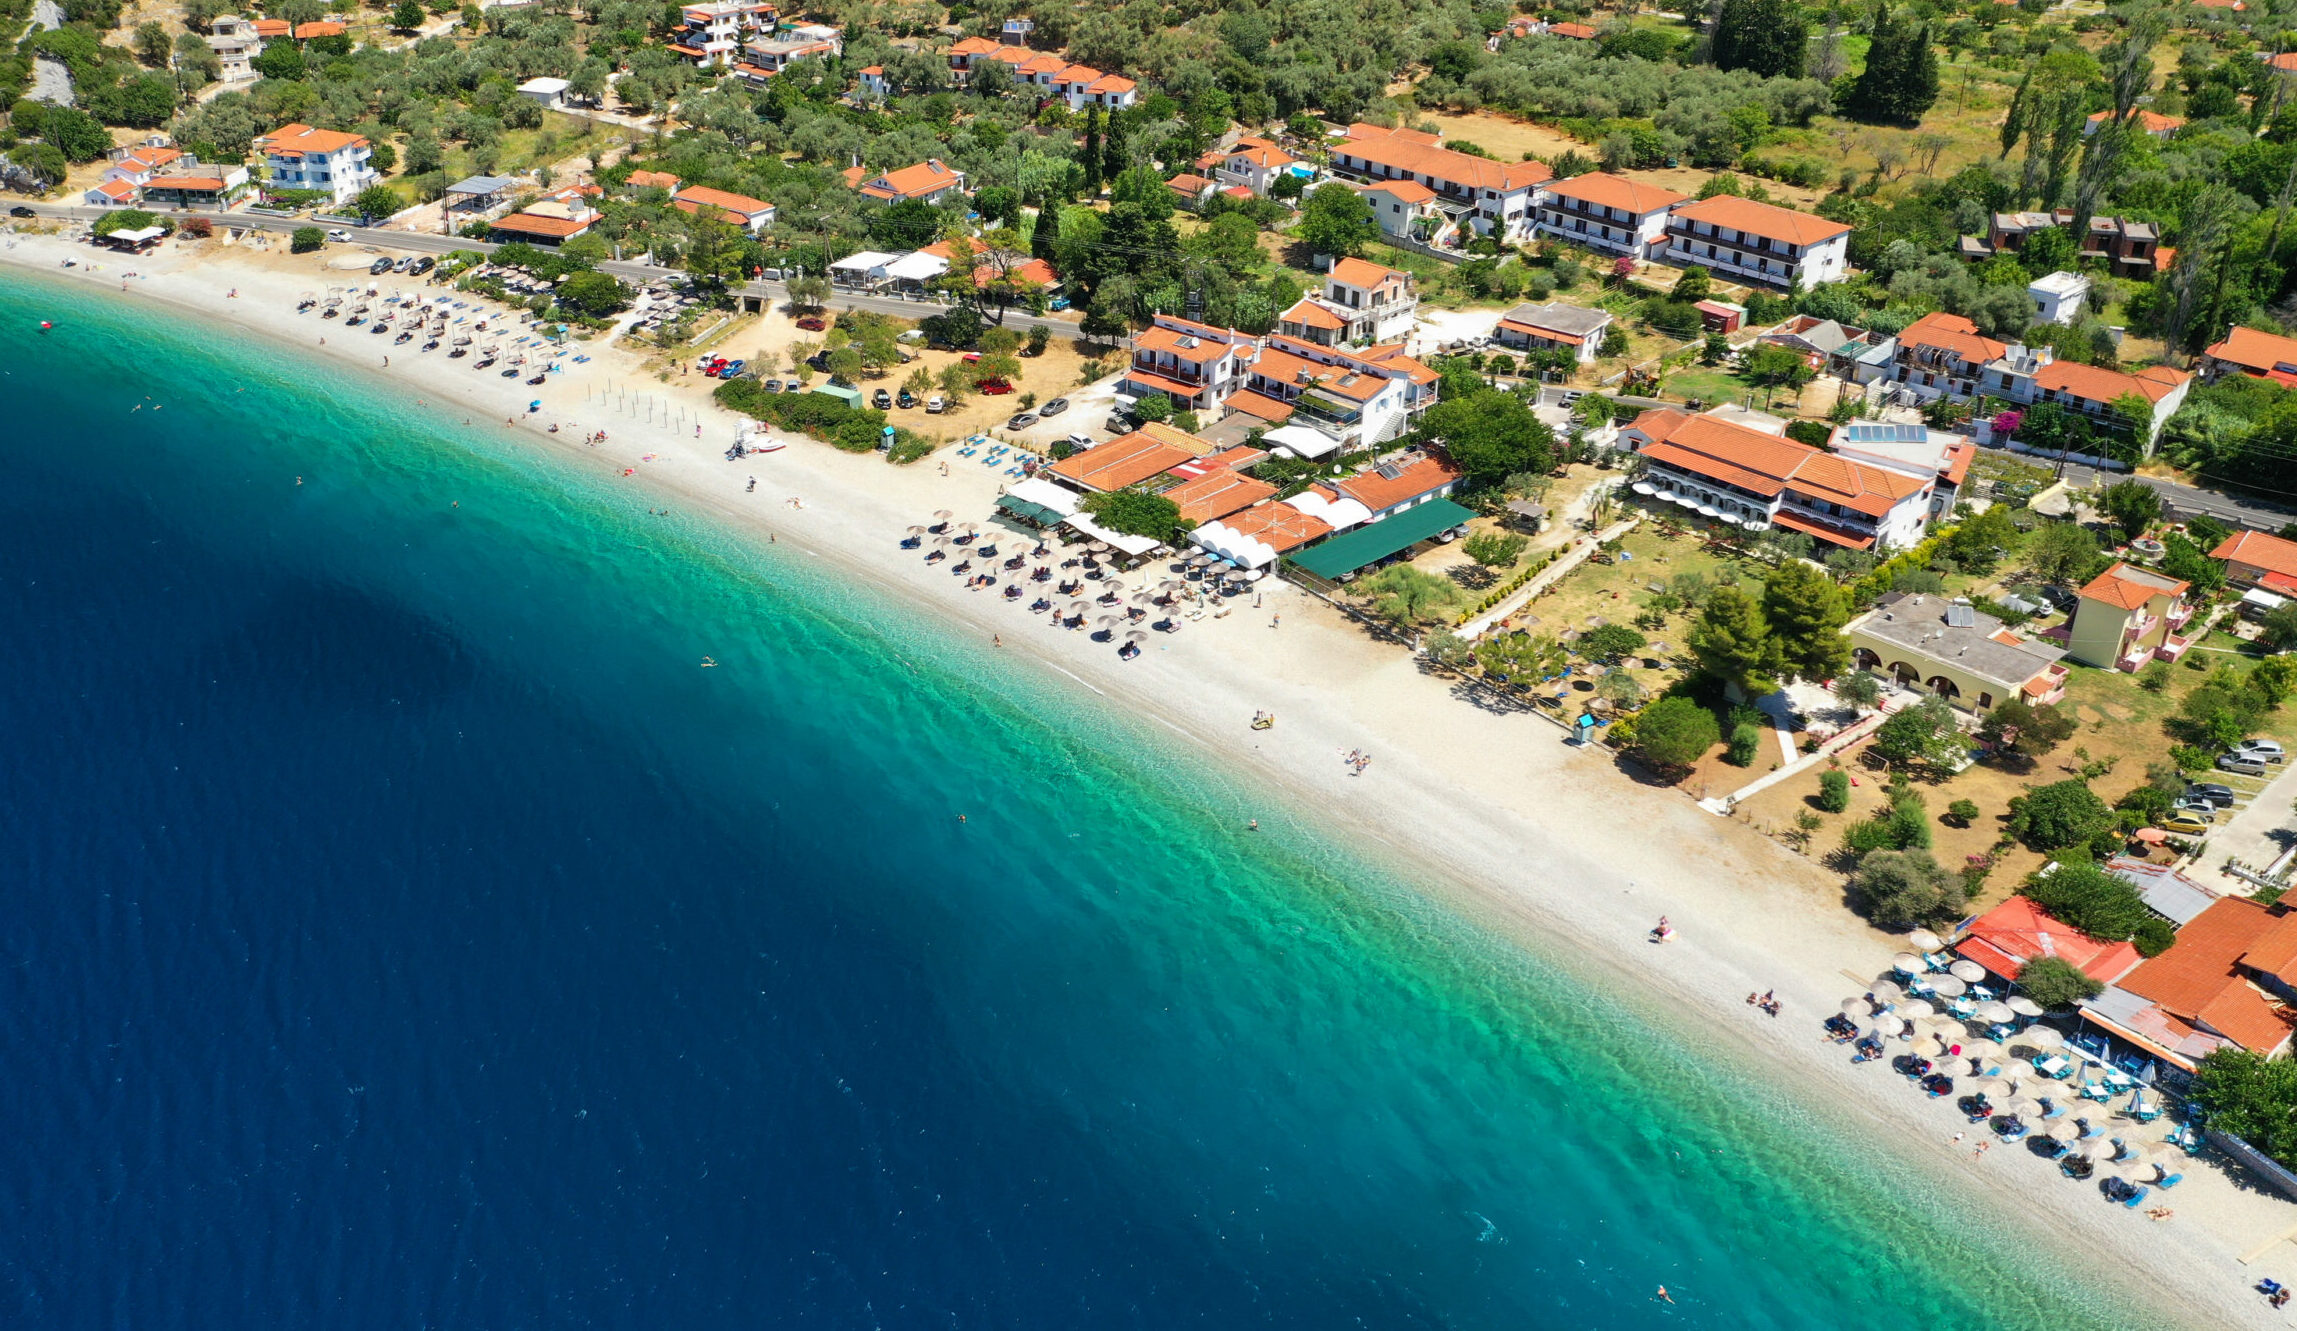 Aegean Sea: The beach with the pine trees touching the sea